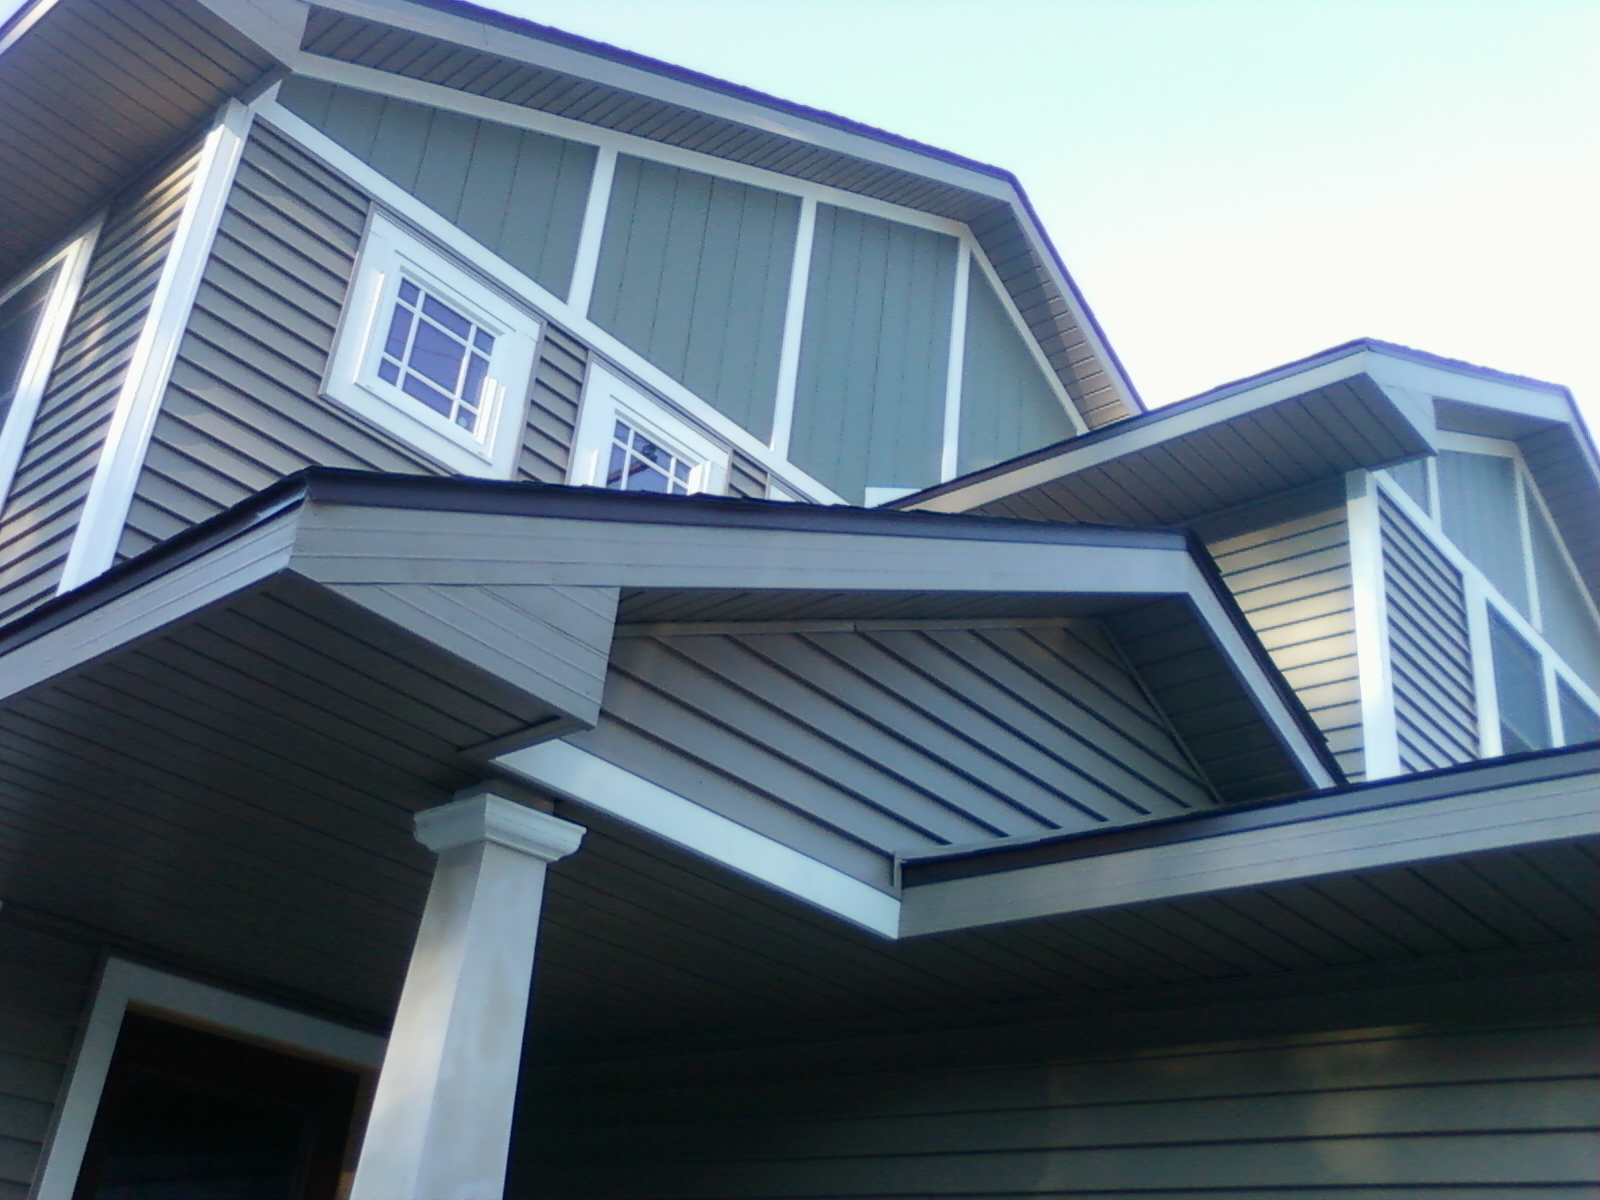 Saga Builders Siding Fascisa And Soffit